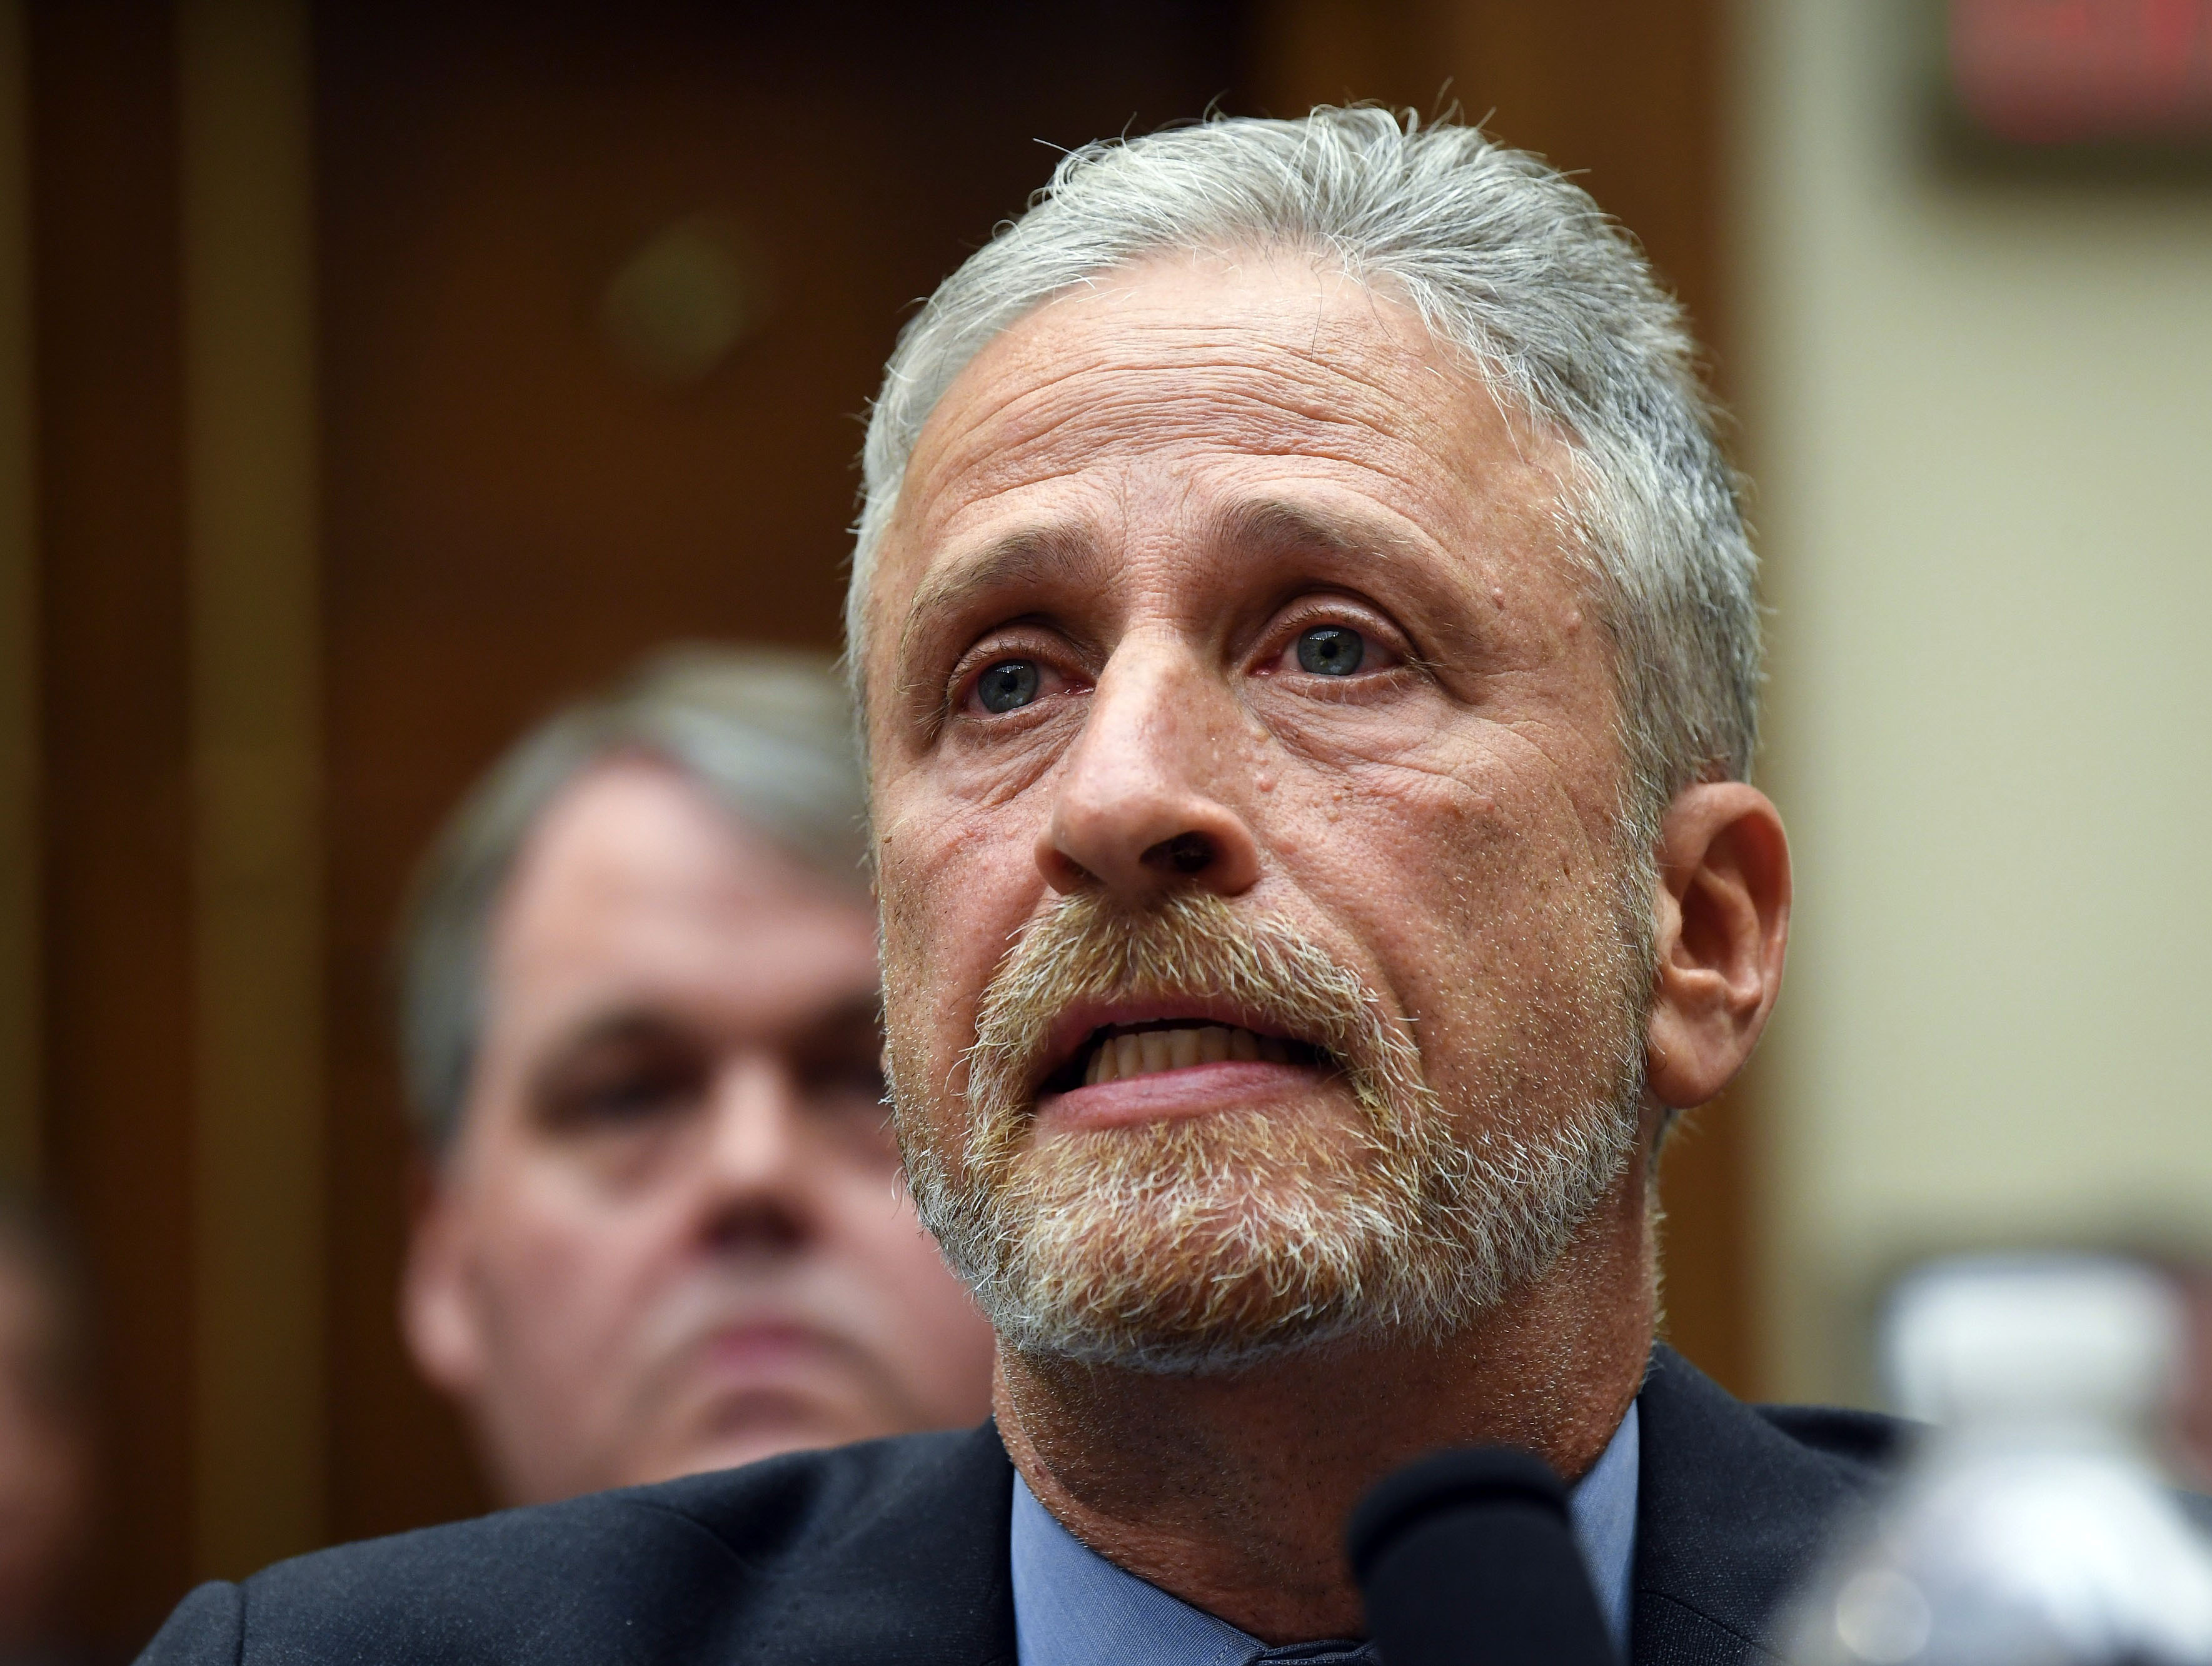 Jon Stewart testifies in front of the House Judiciary Committee on the need to reauthorie the September 11th Victim Compensation Fund.